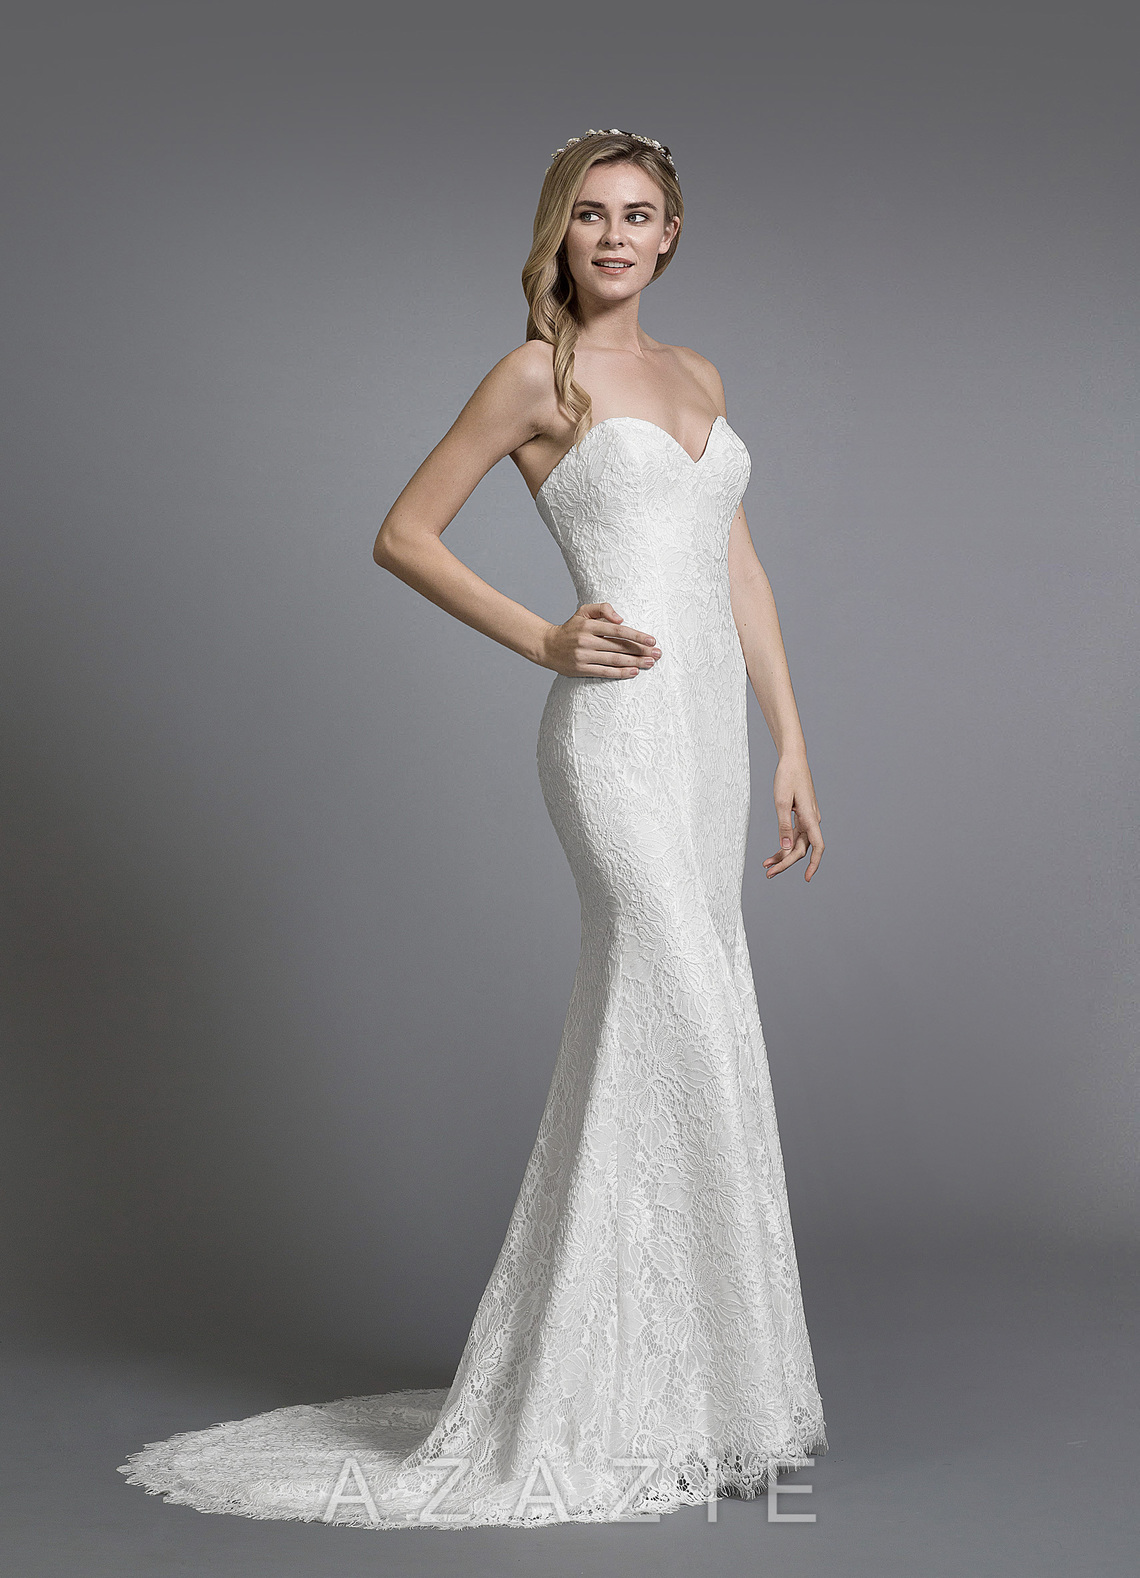 37965731a7 Azazie Celia BG Wedding Dress